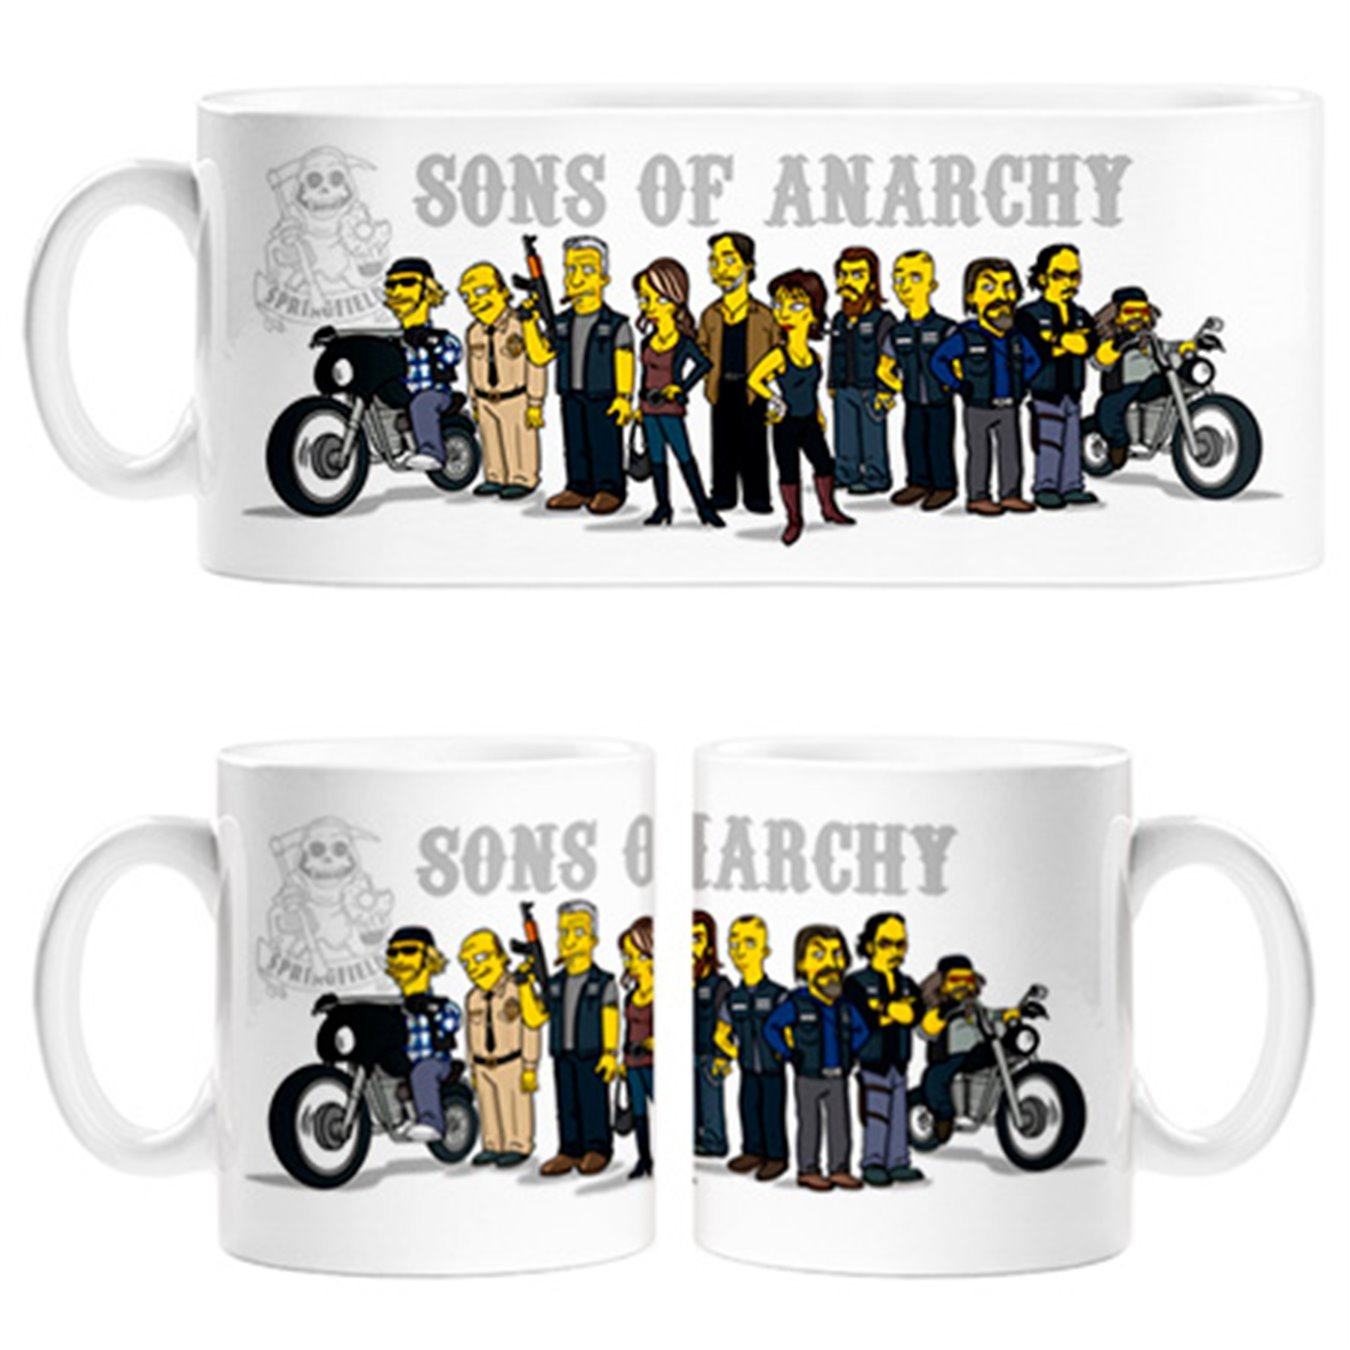 Taza Sons of Anarchy versión Los Simpson https://amzn.to/2Gtjuux